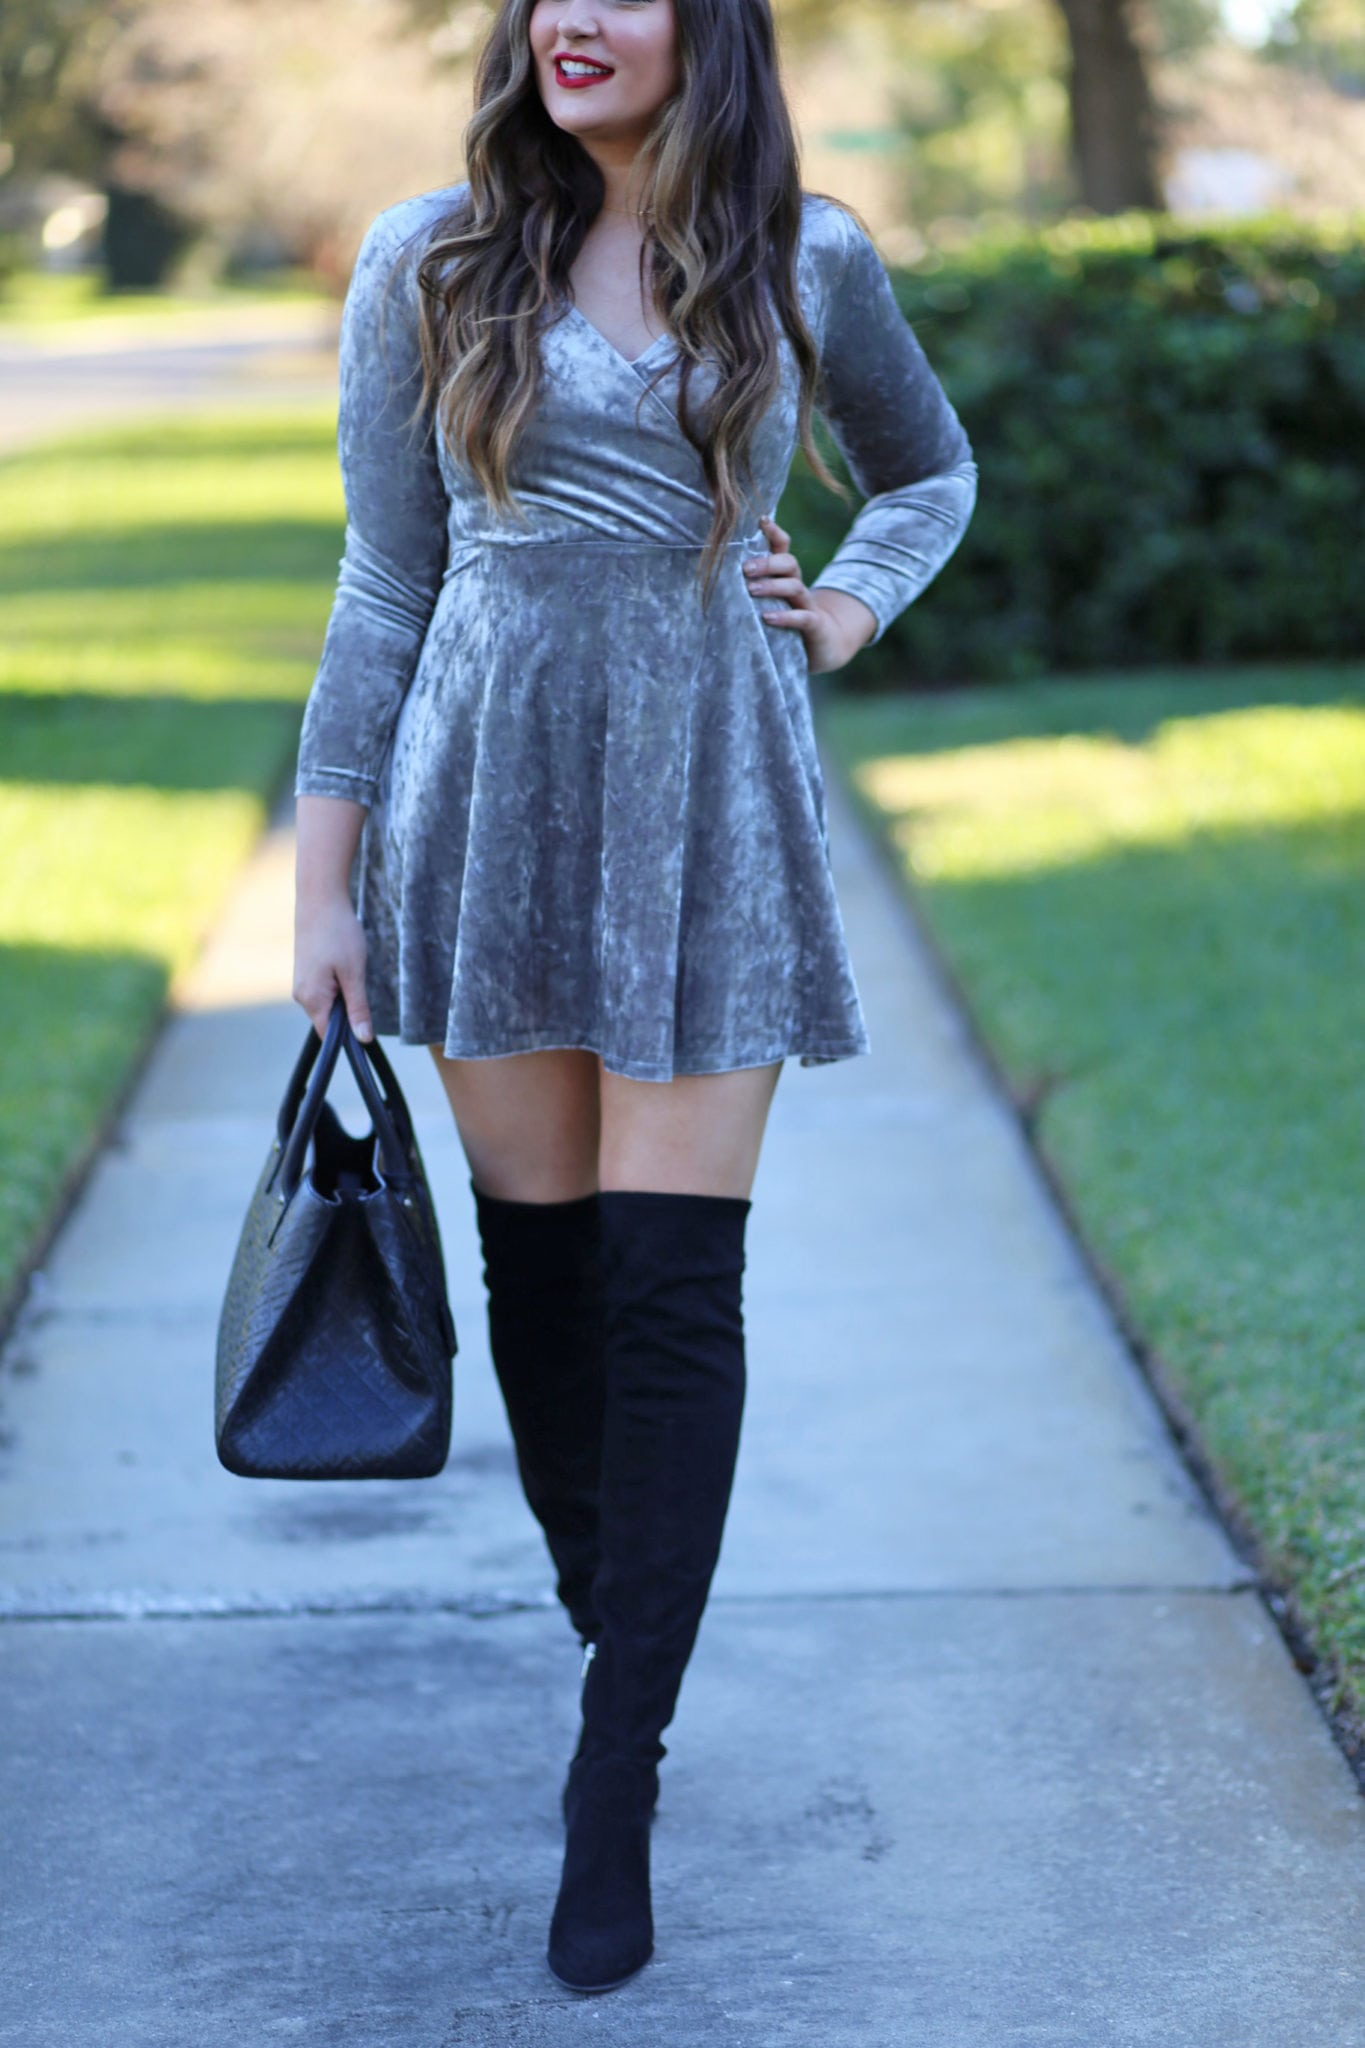 velvet long sleeve dress | otk boots | winter fashion | mother daughter outfit | park | Mash Elle beauty blogger | velvet dress